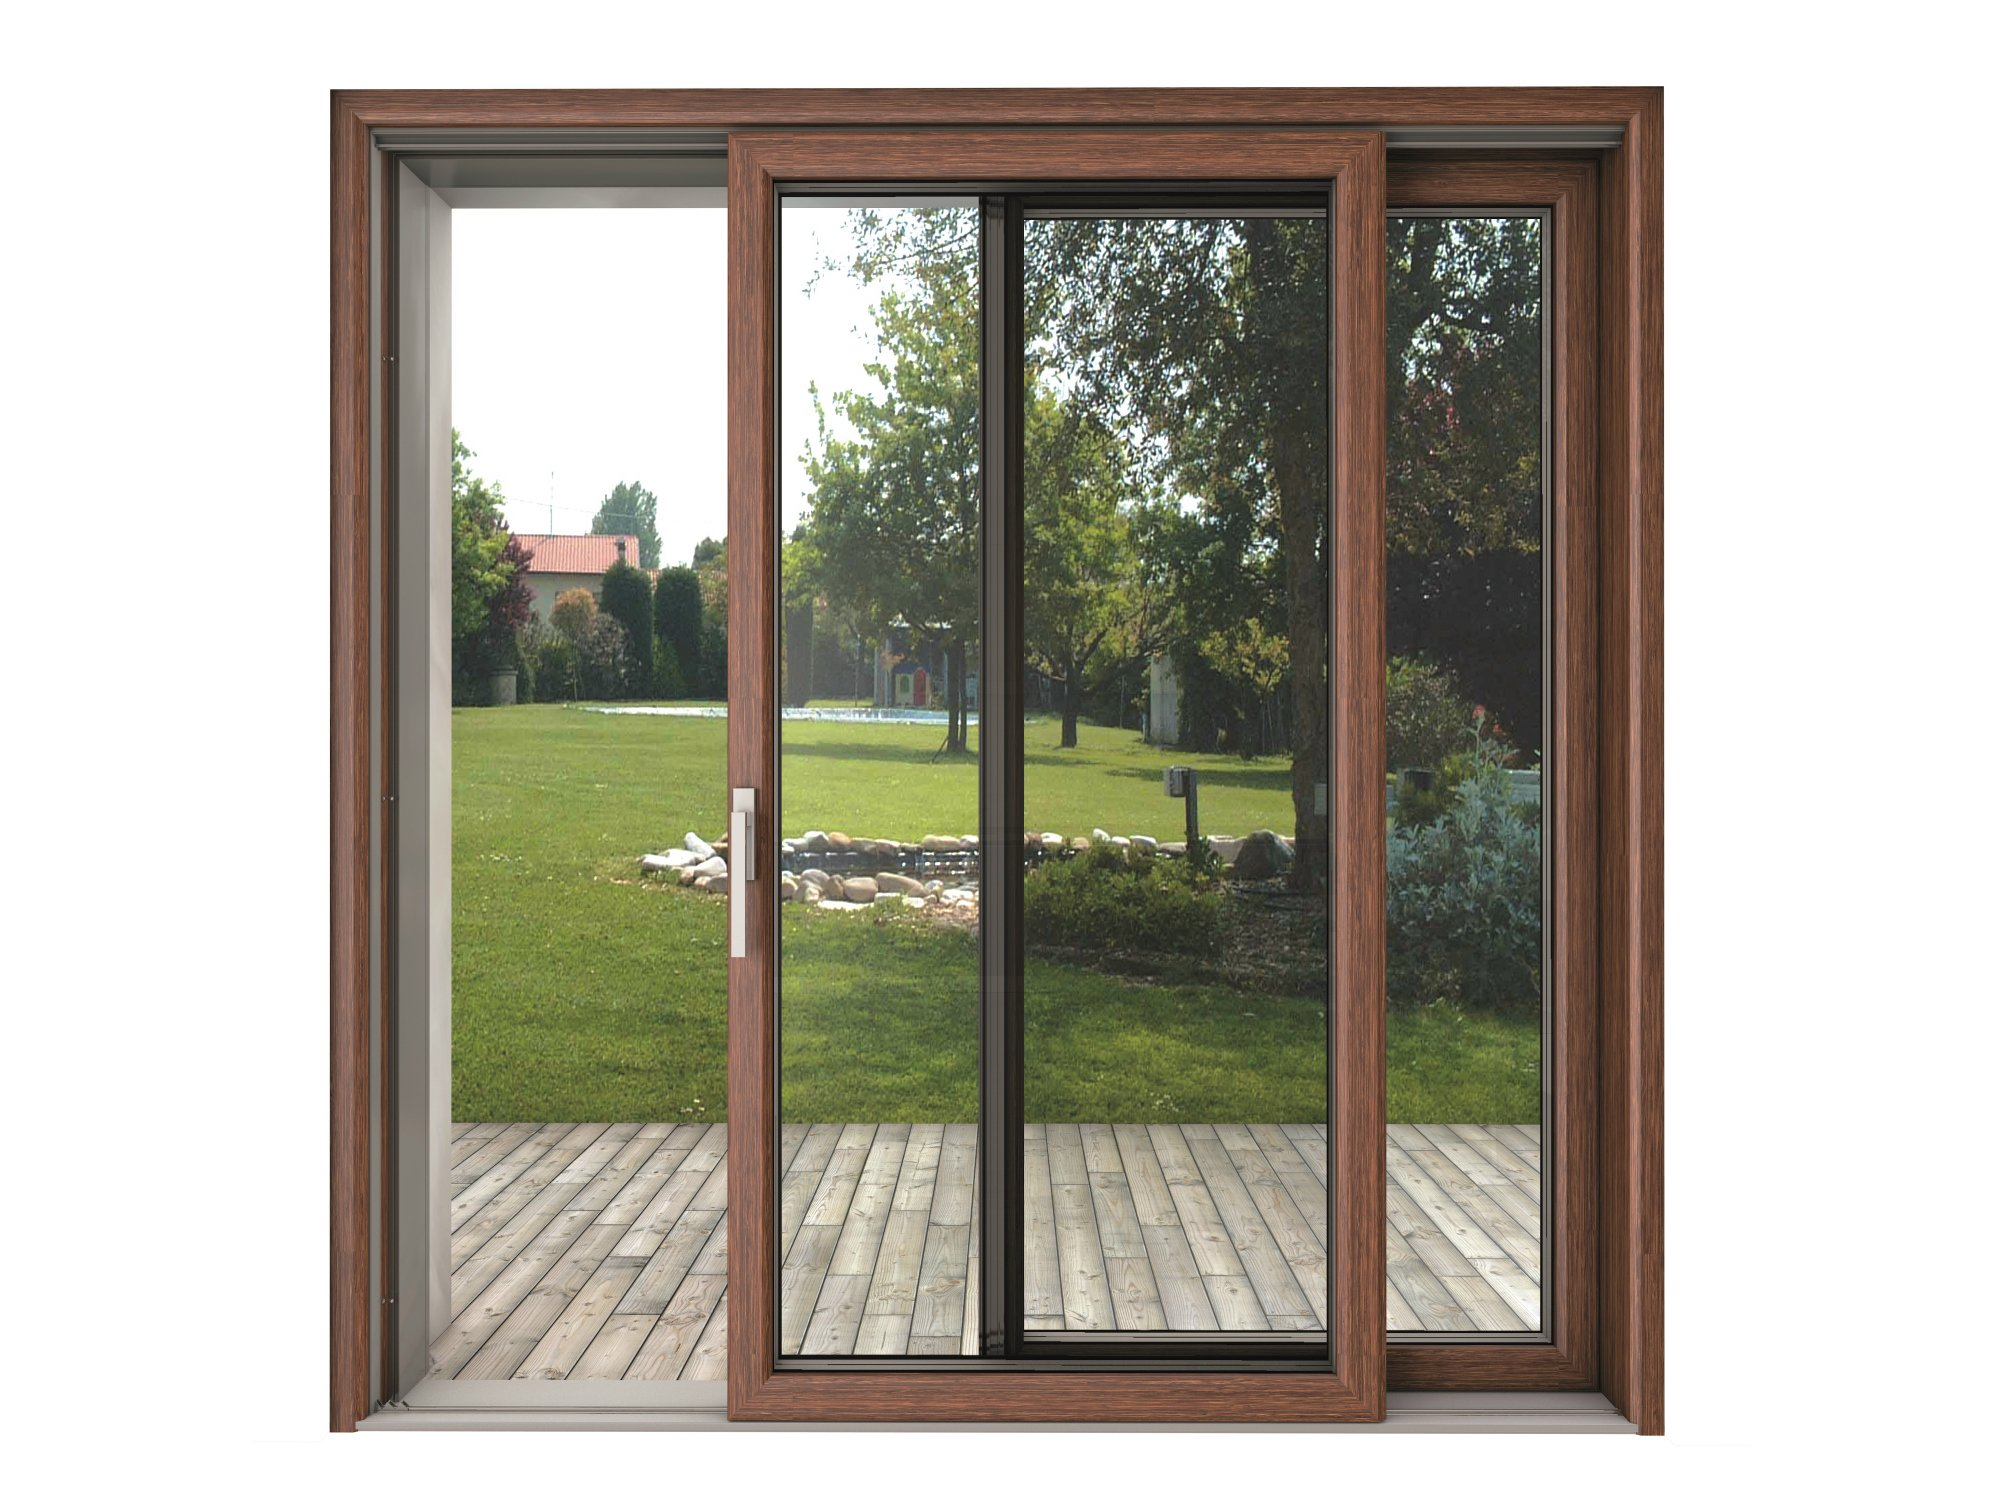 Blindoklima wood sliding window by sl di sabatino liberato for Window design wooden